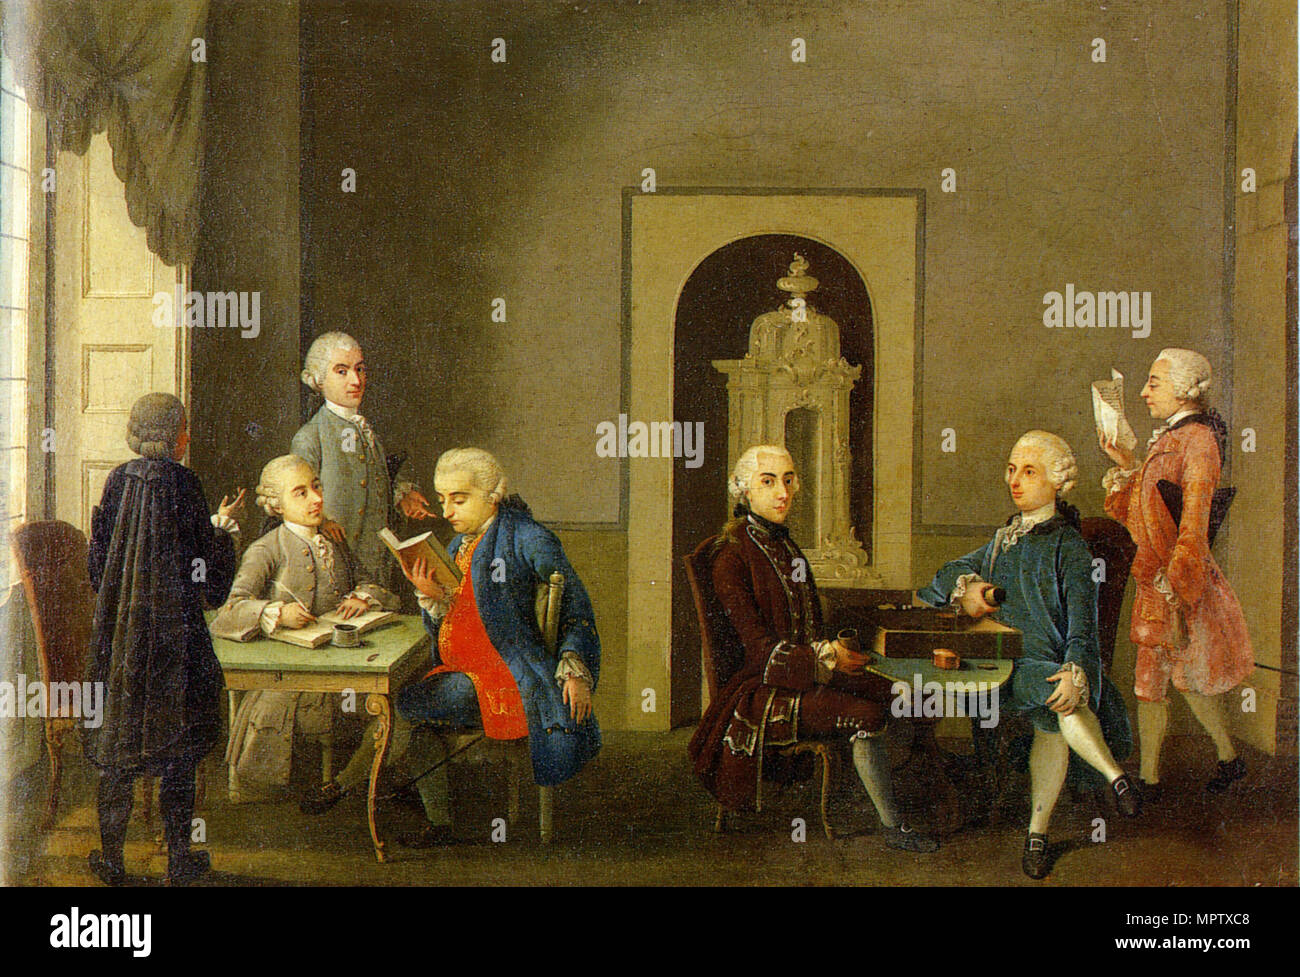 The Meeting of the Accademia dei Pugni (Academy of Fists). - Stock Image